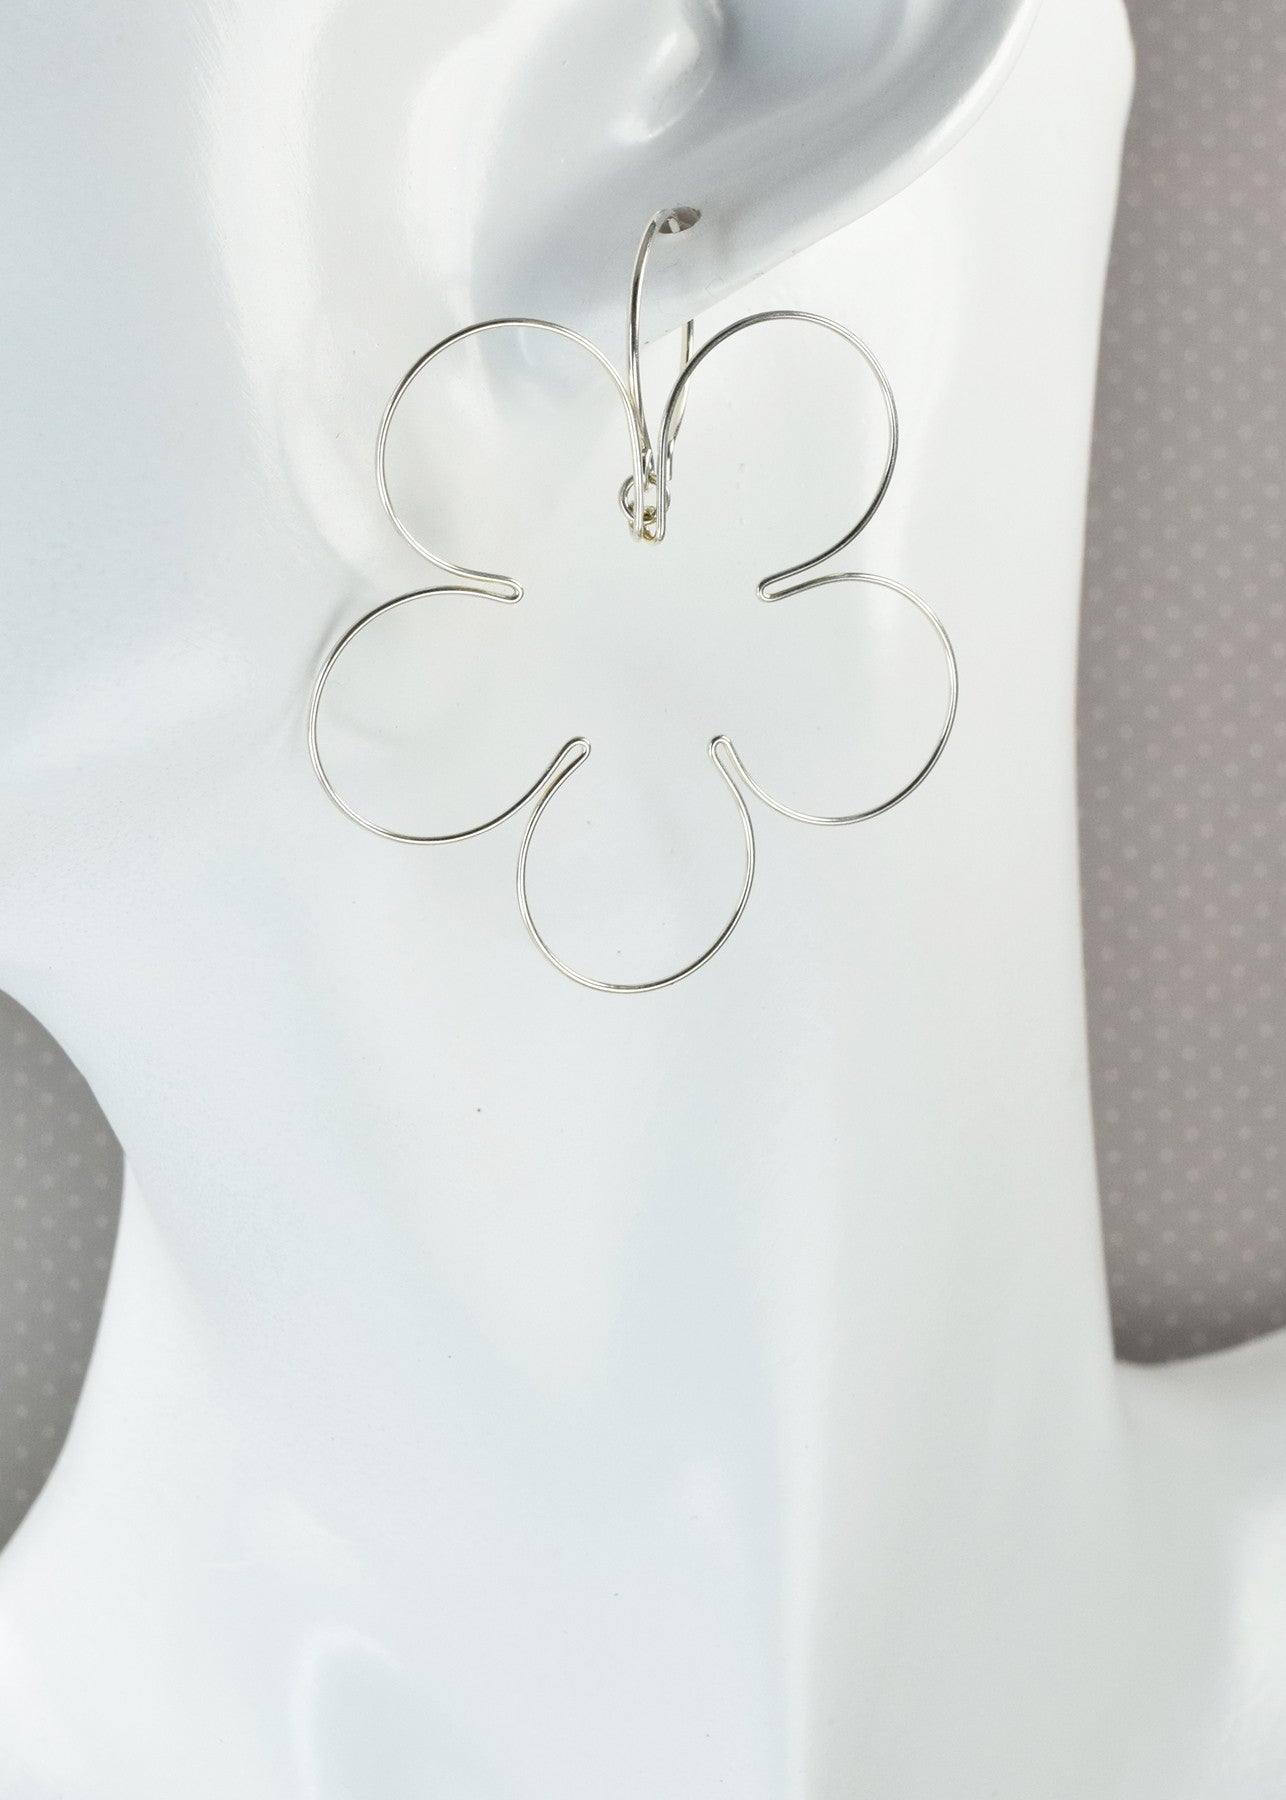 Blossom Silver Earrings, Large - Cloverleaf Jewelry